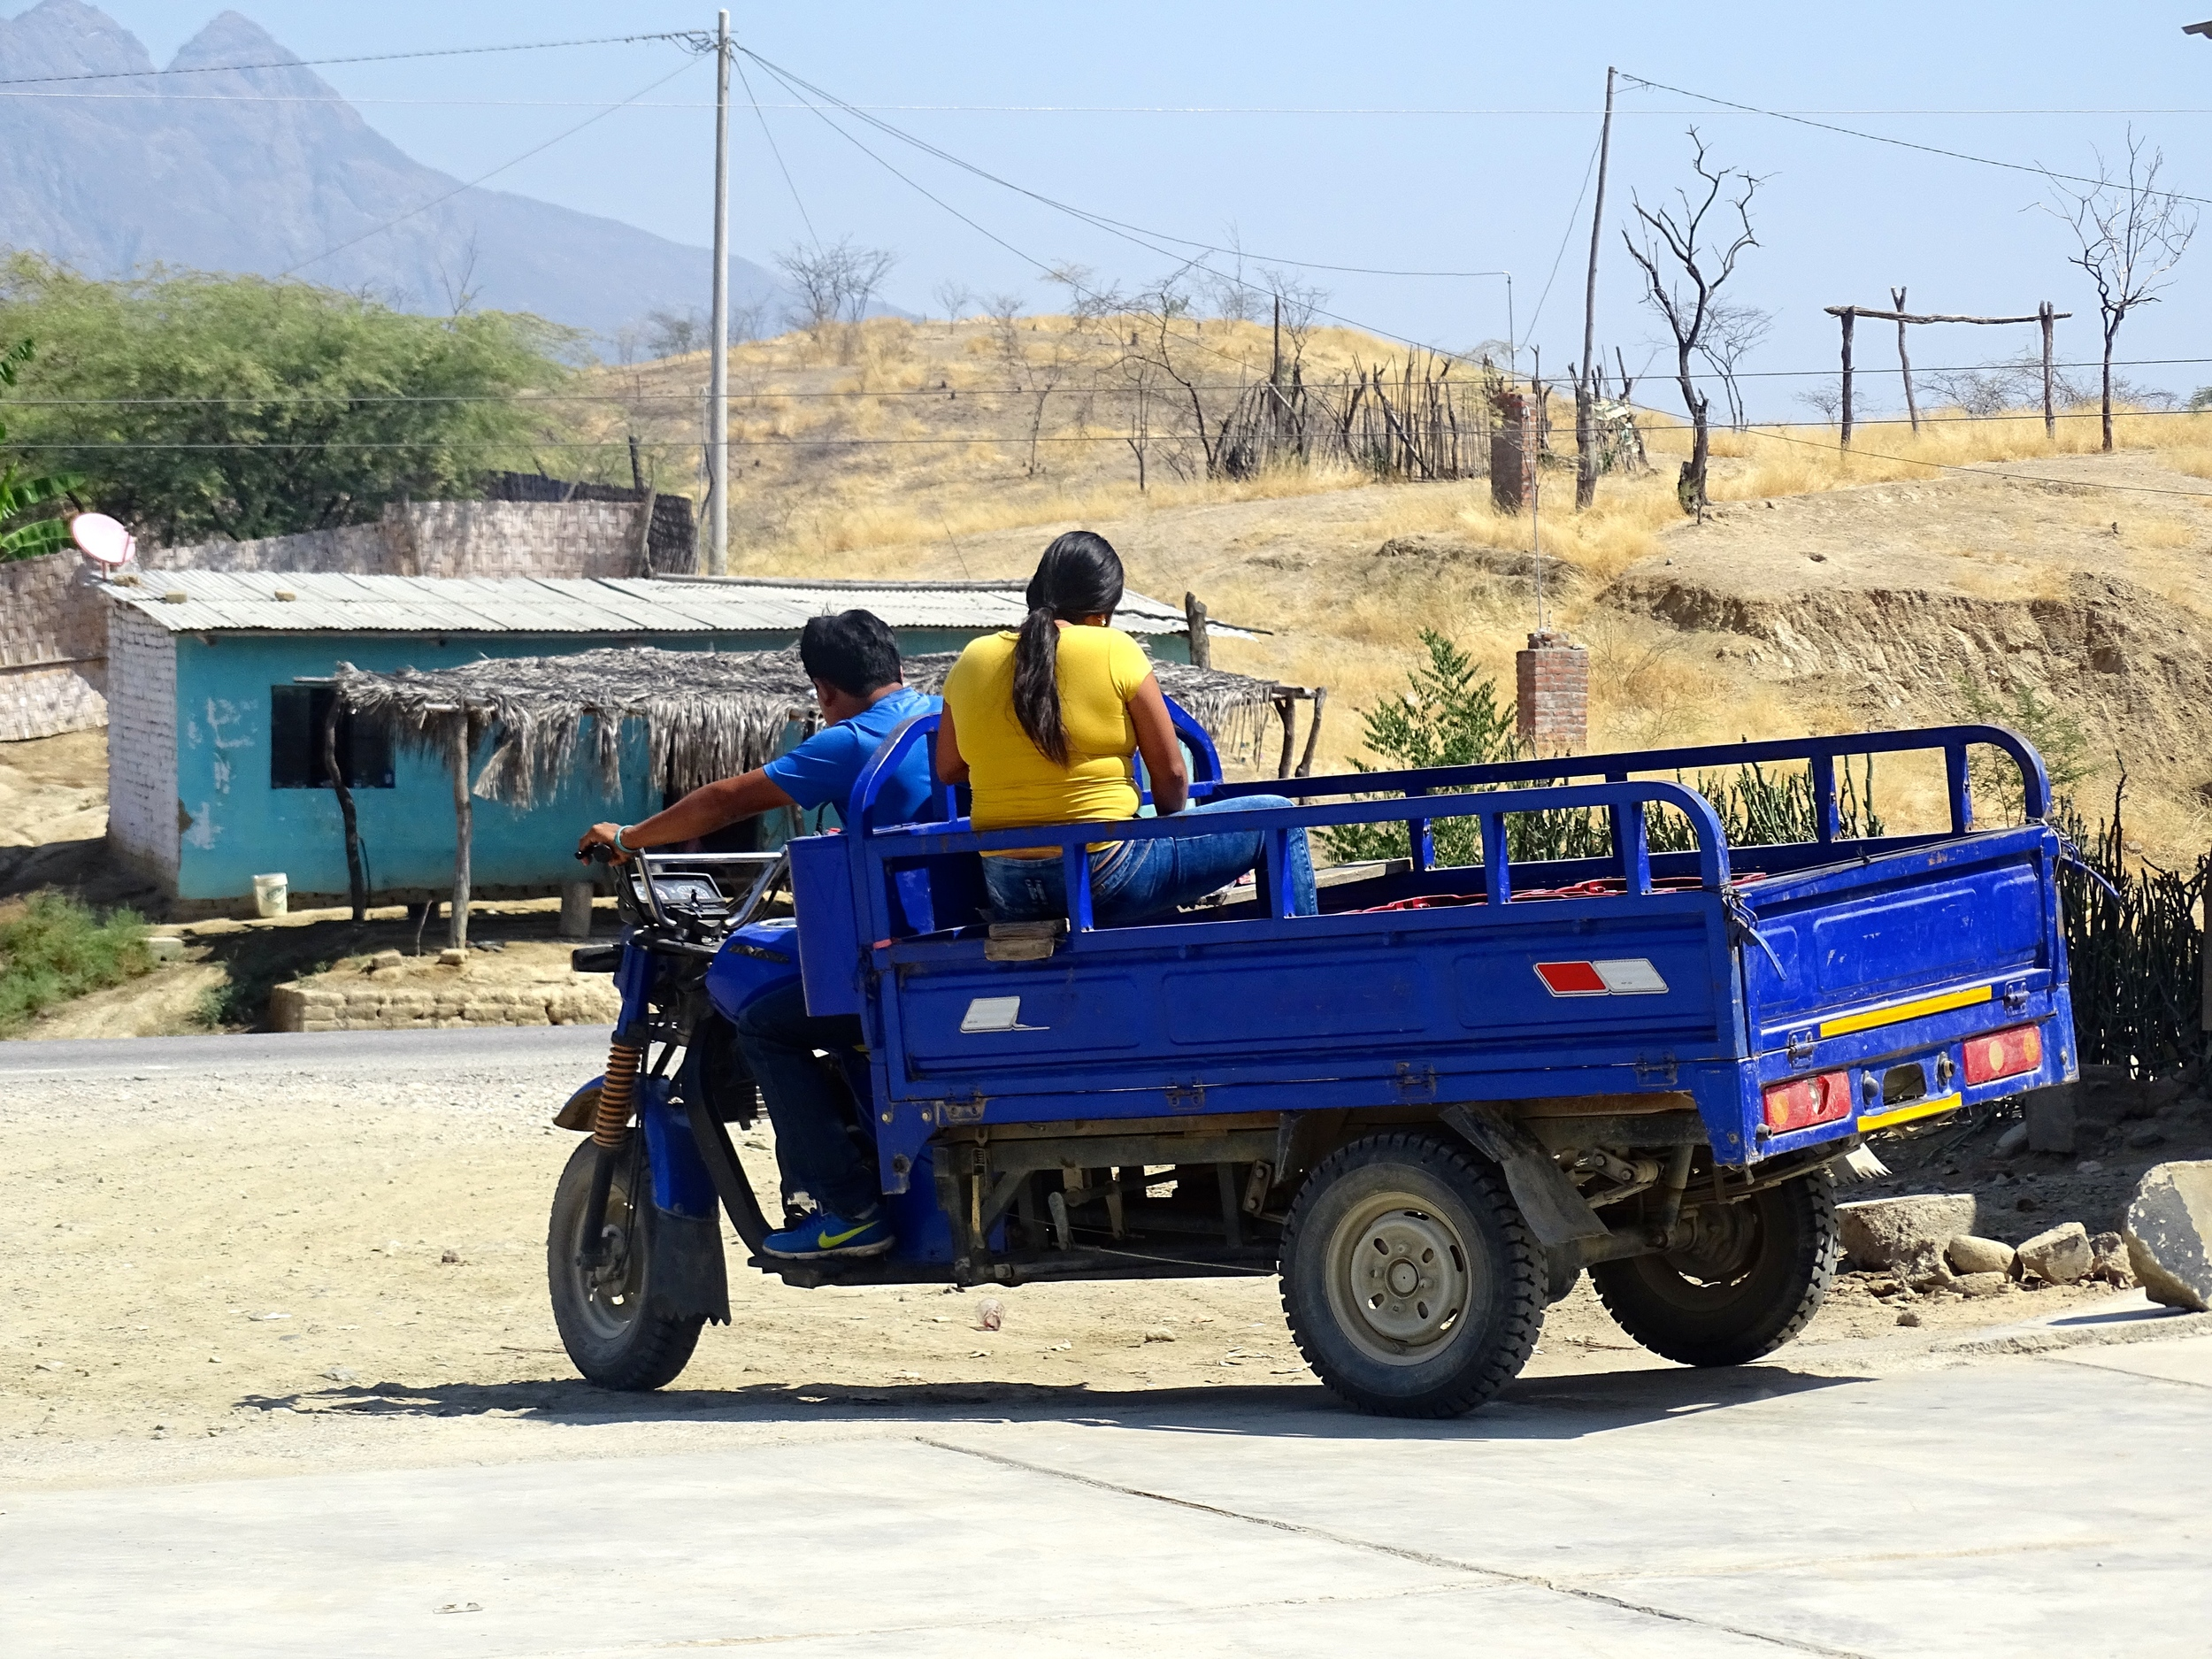 I just loved these little moto-trucks, they are all over and are responsible for much of the local delivery service.